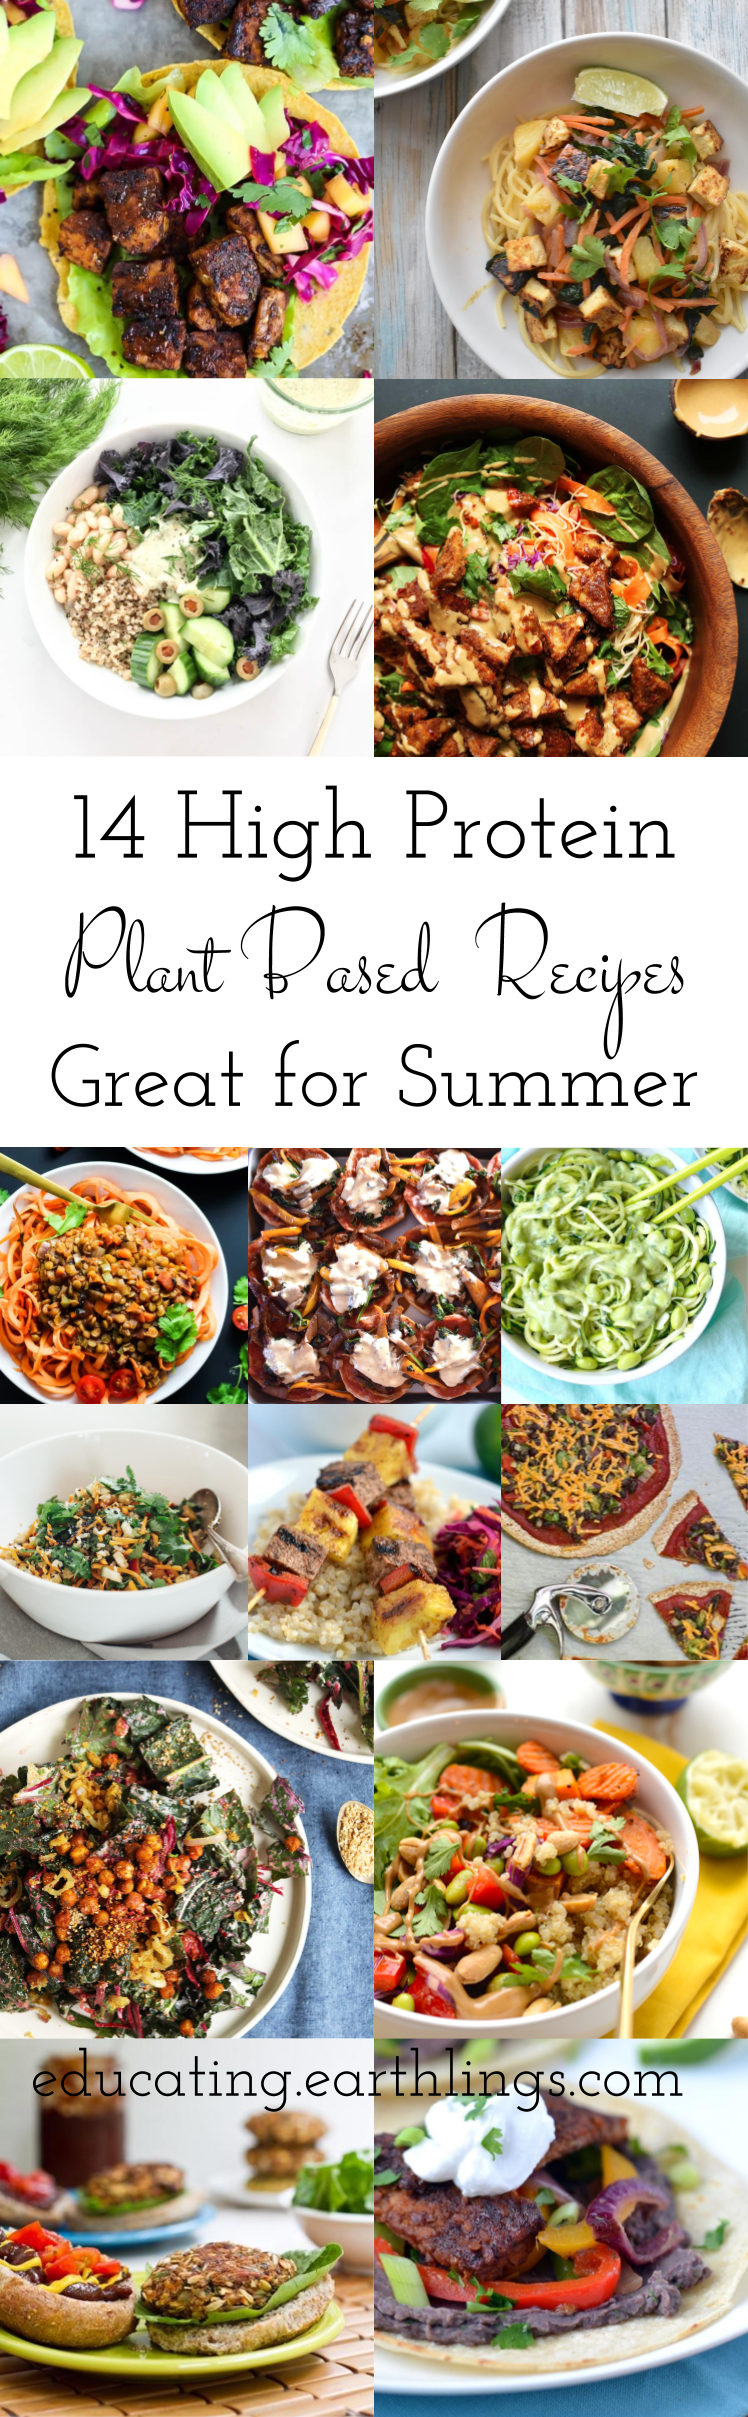 14 High Protein Plant Based Recipes Healthy Munchin